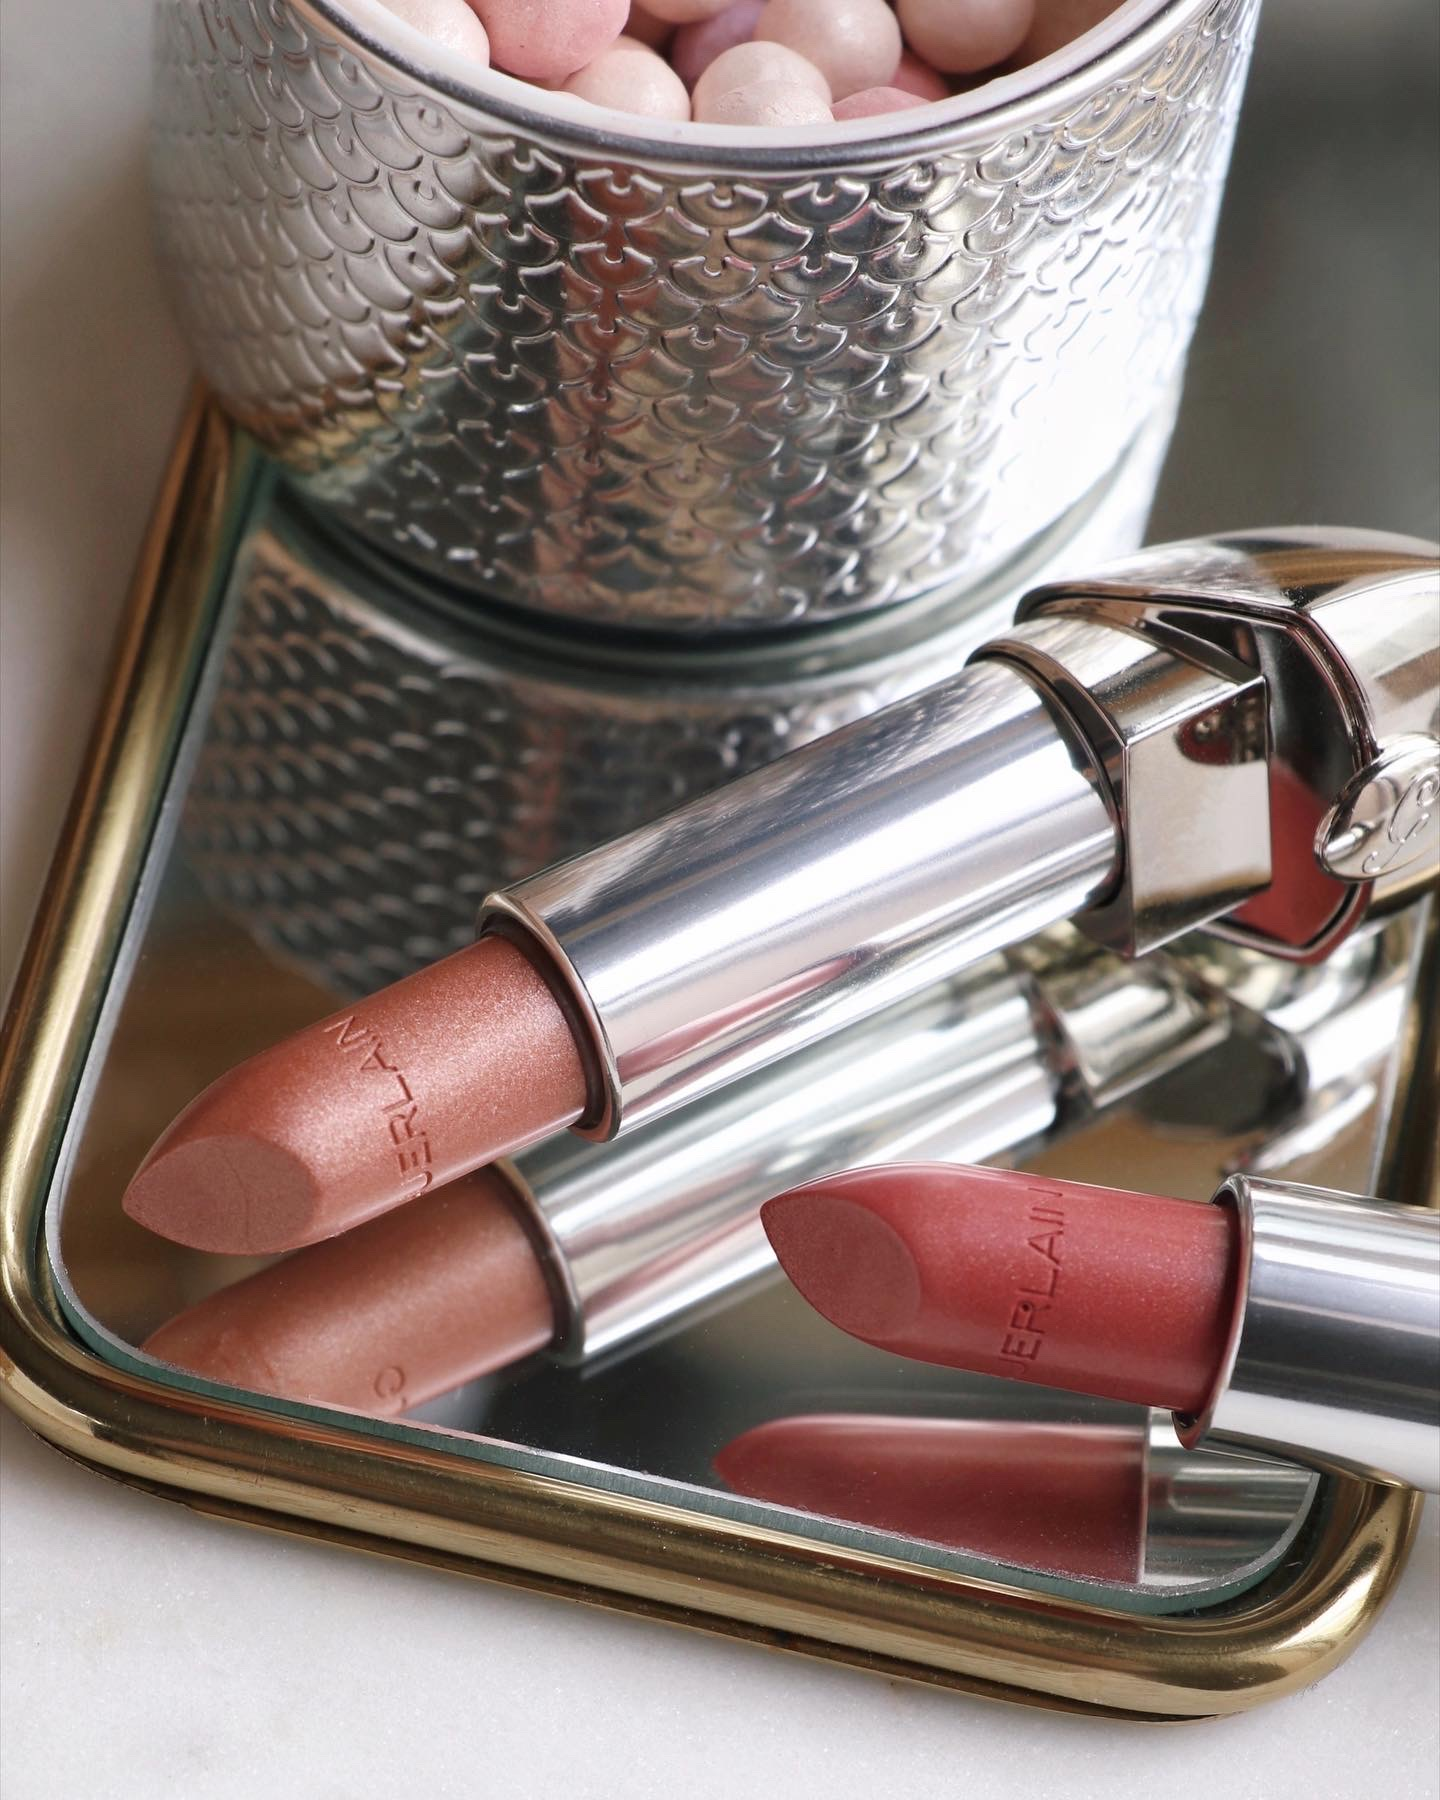 Guerlain Pearl Glow Spring Collection Rouge G Lipstick